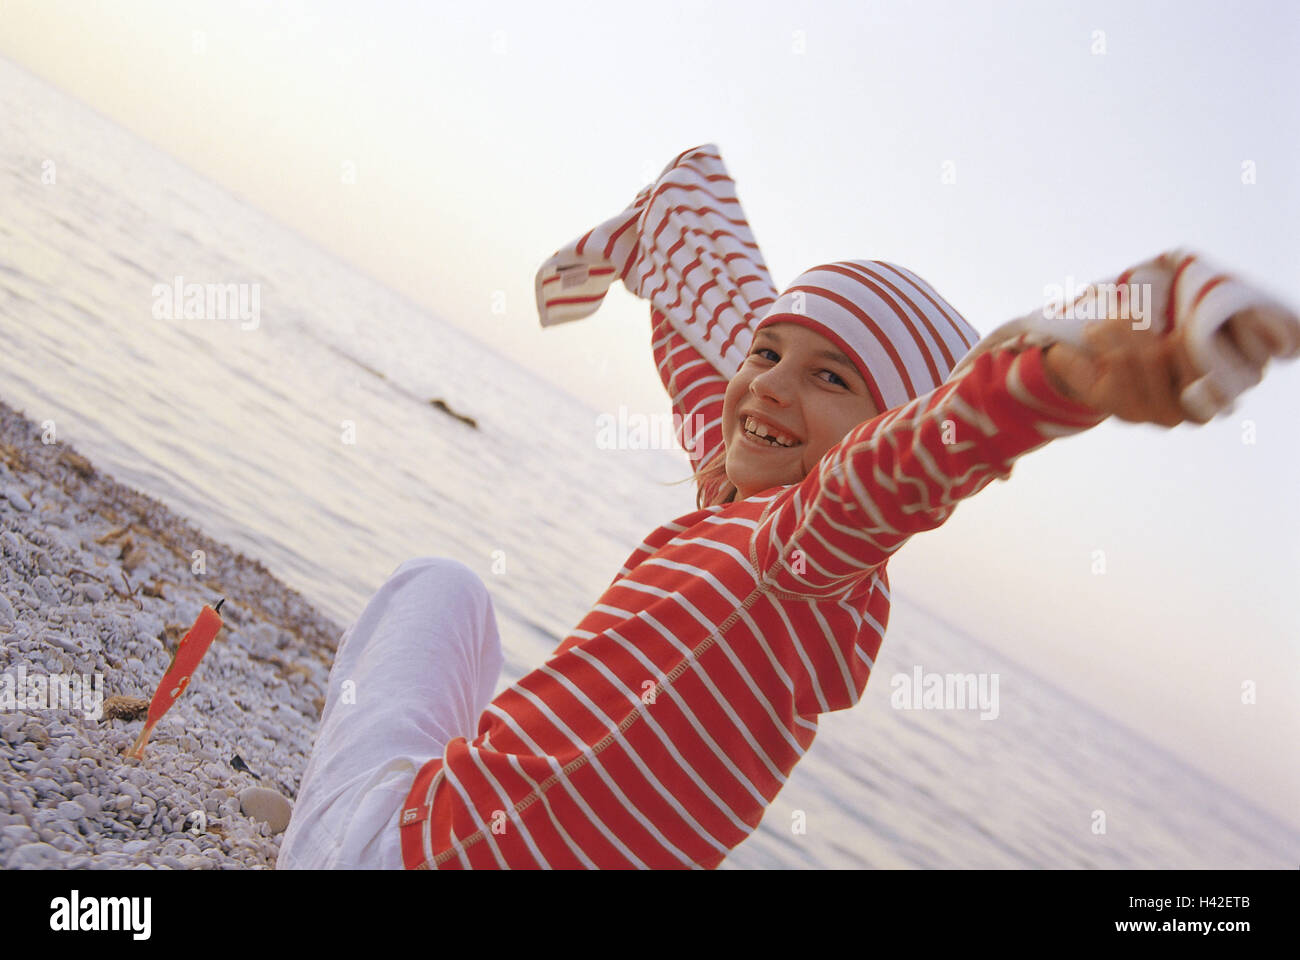 Beach, girls, cheerfully, liveliness   Child, 7 years, Shirt, roved, cap, headgear, sits, turns, gaze shoulder, - Stock Image